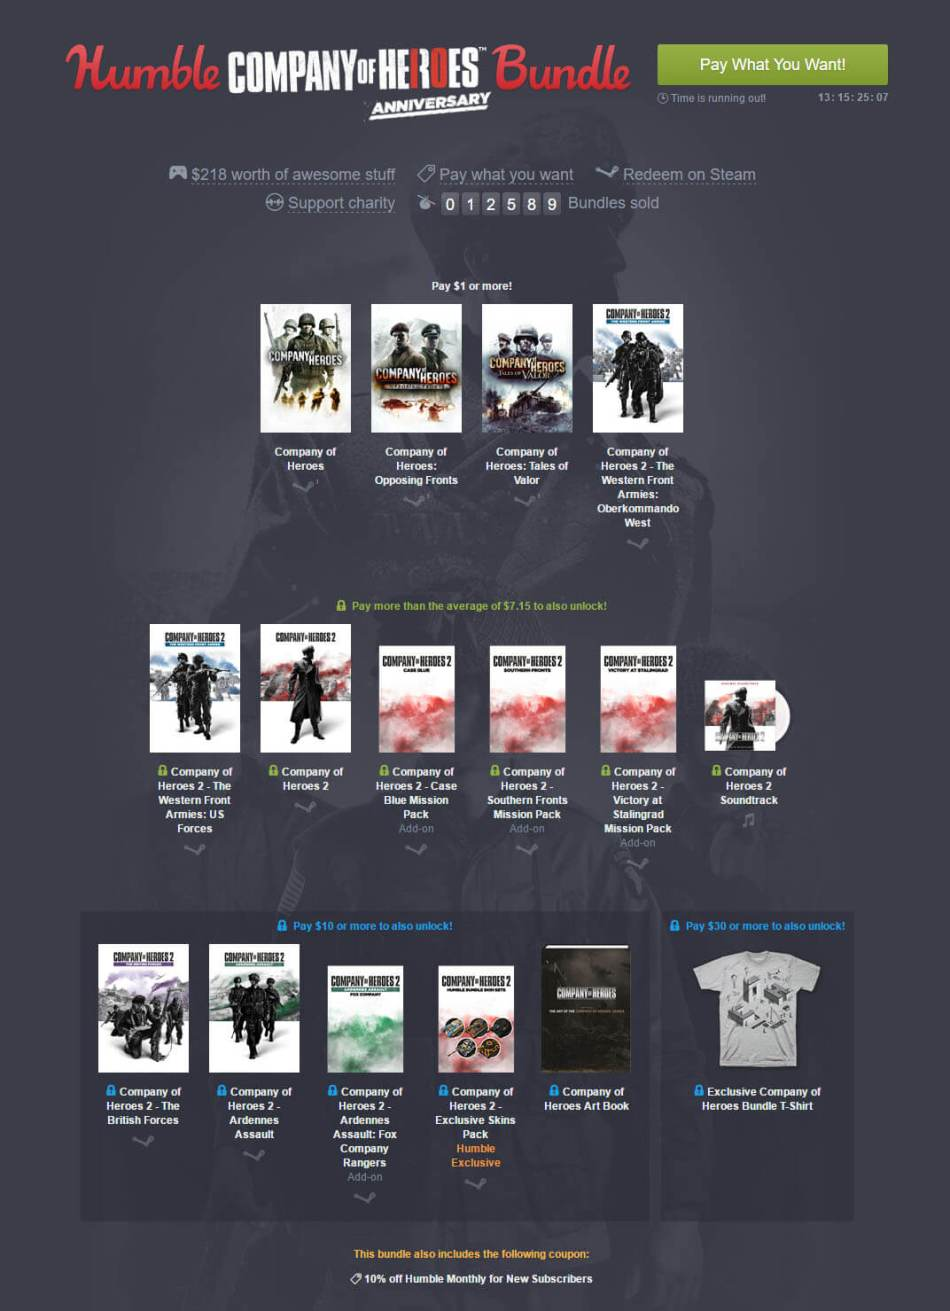 humble-bundle-company-of-heroes-anniversary